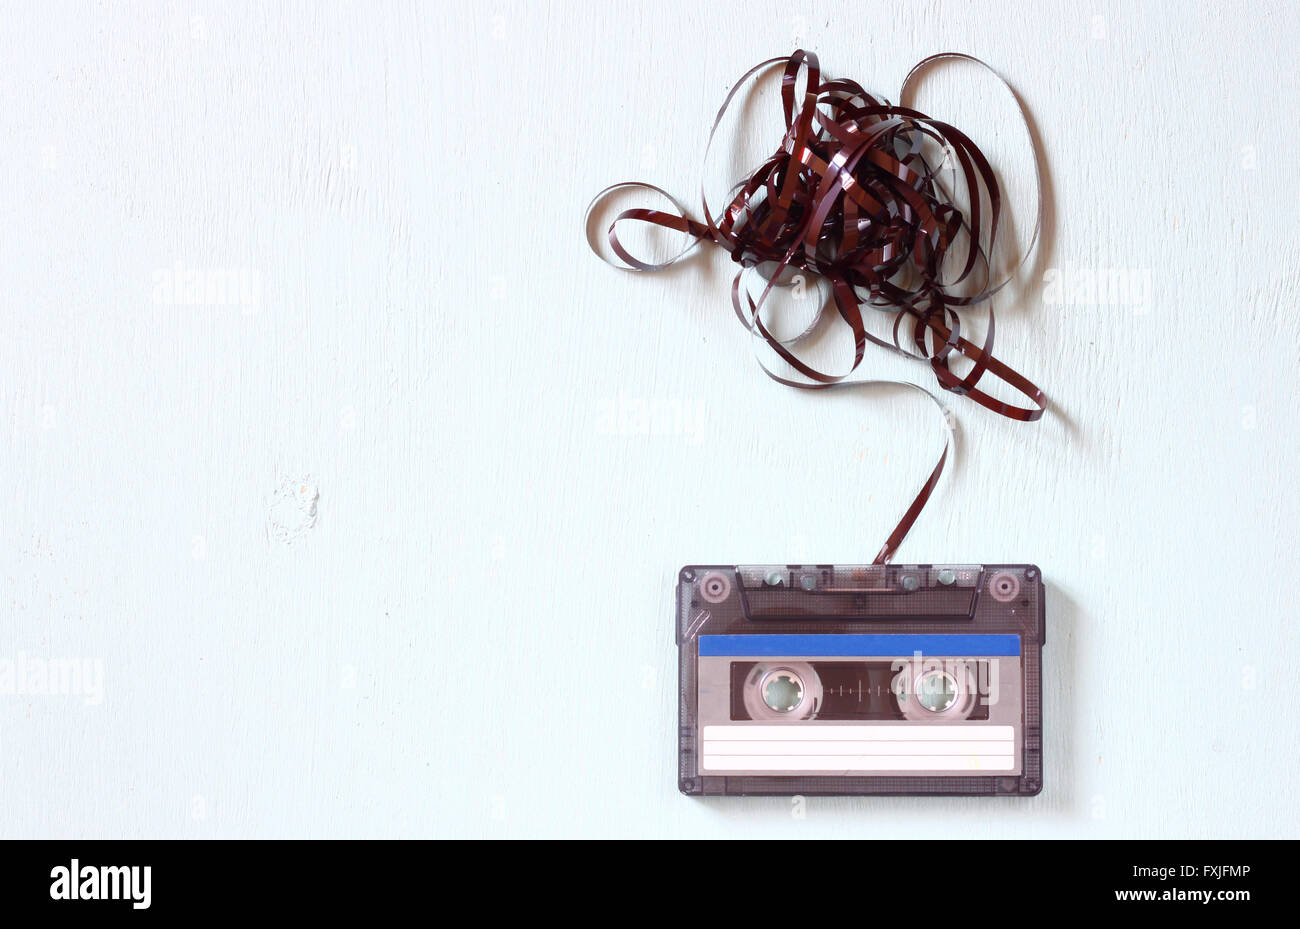 Audio cassette tape with subtracted out tape - Stock Image